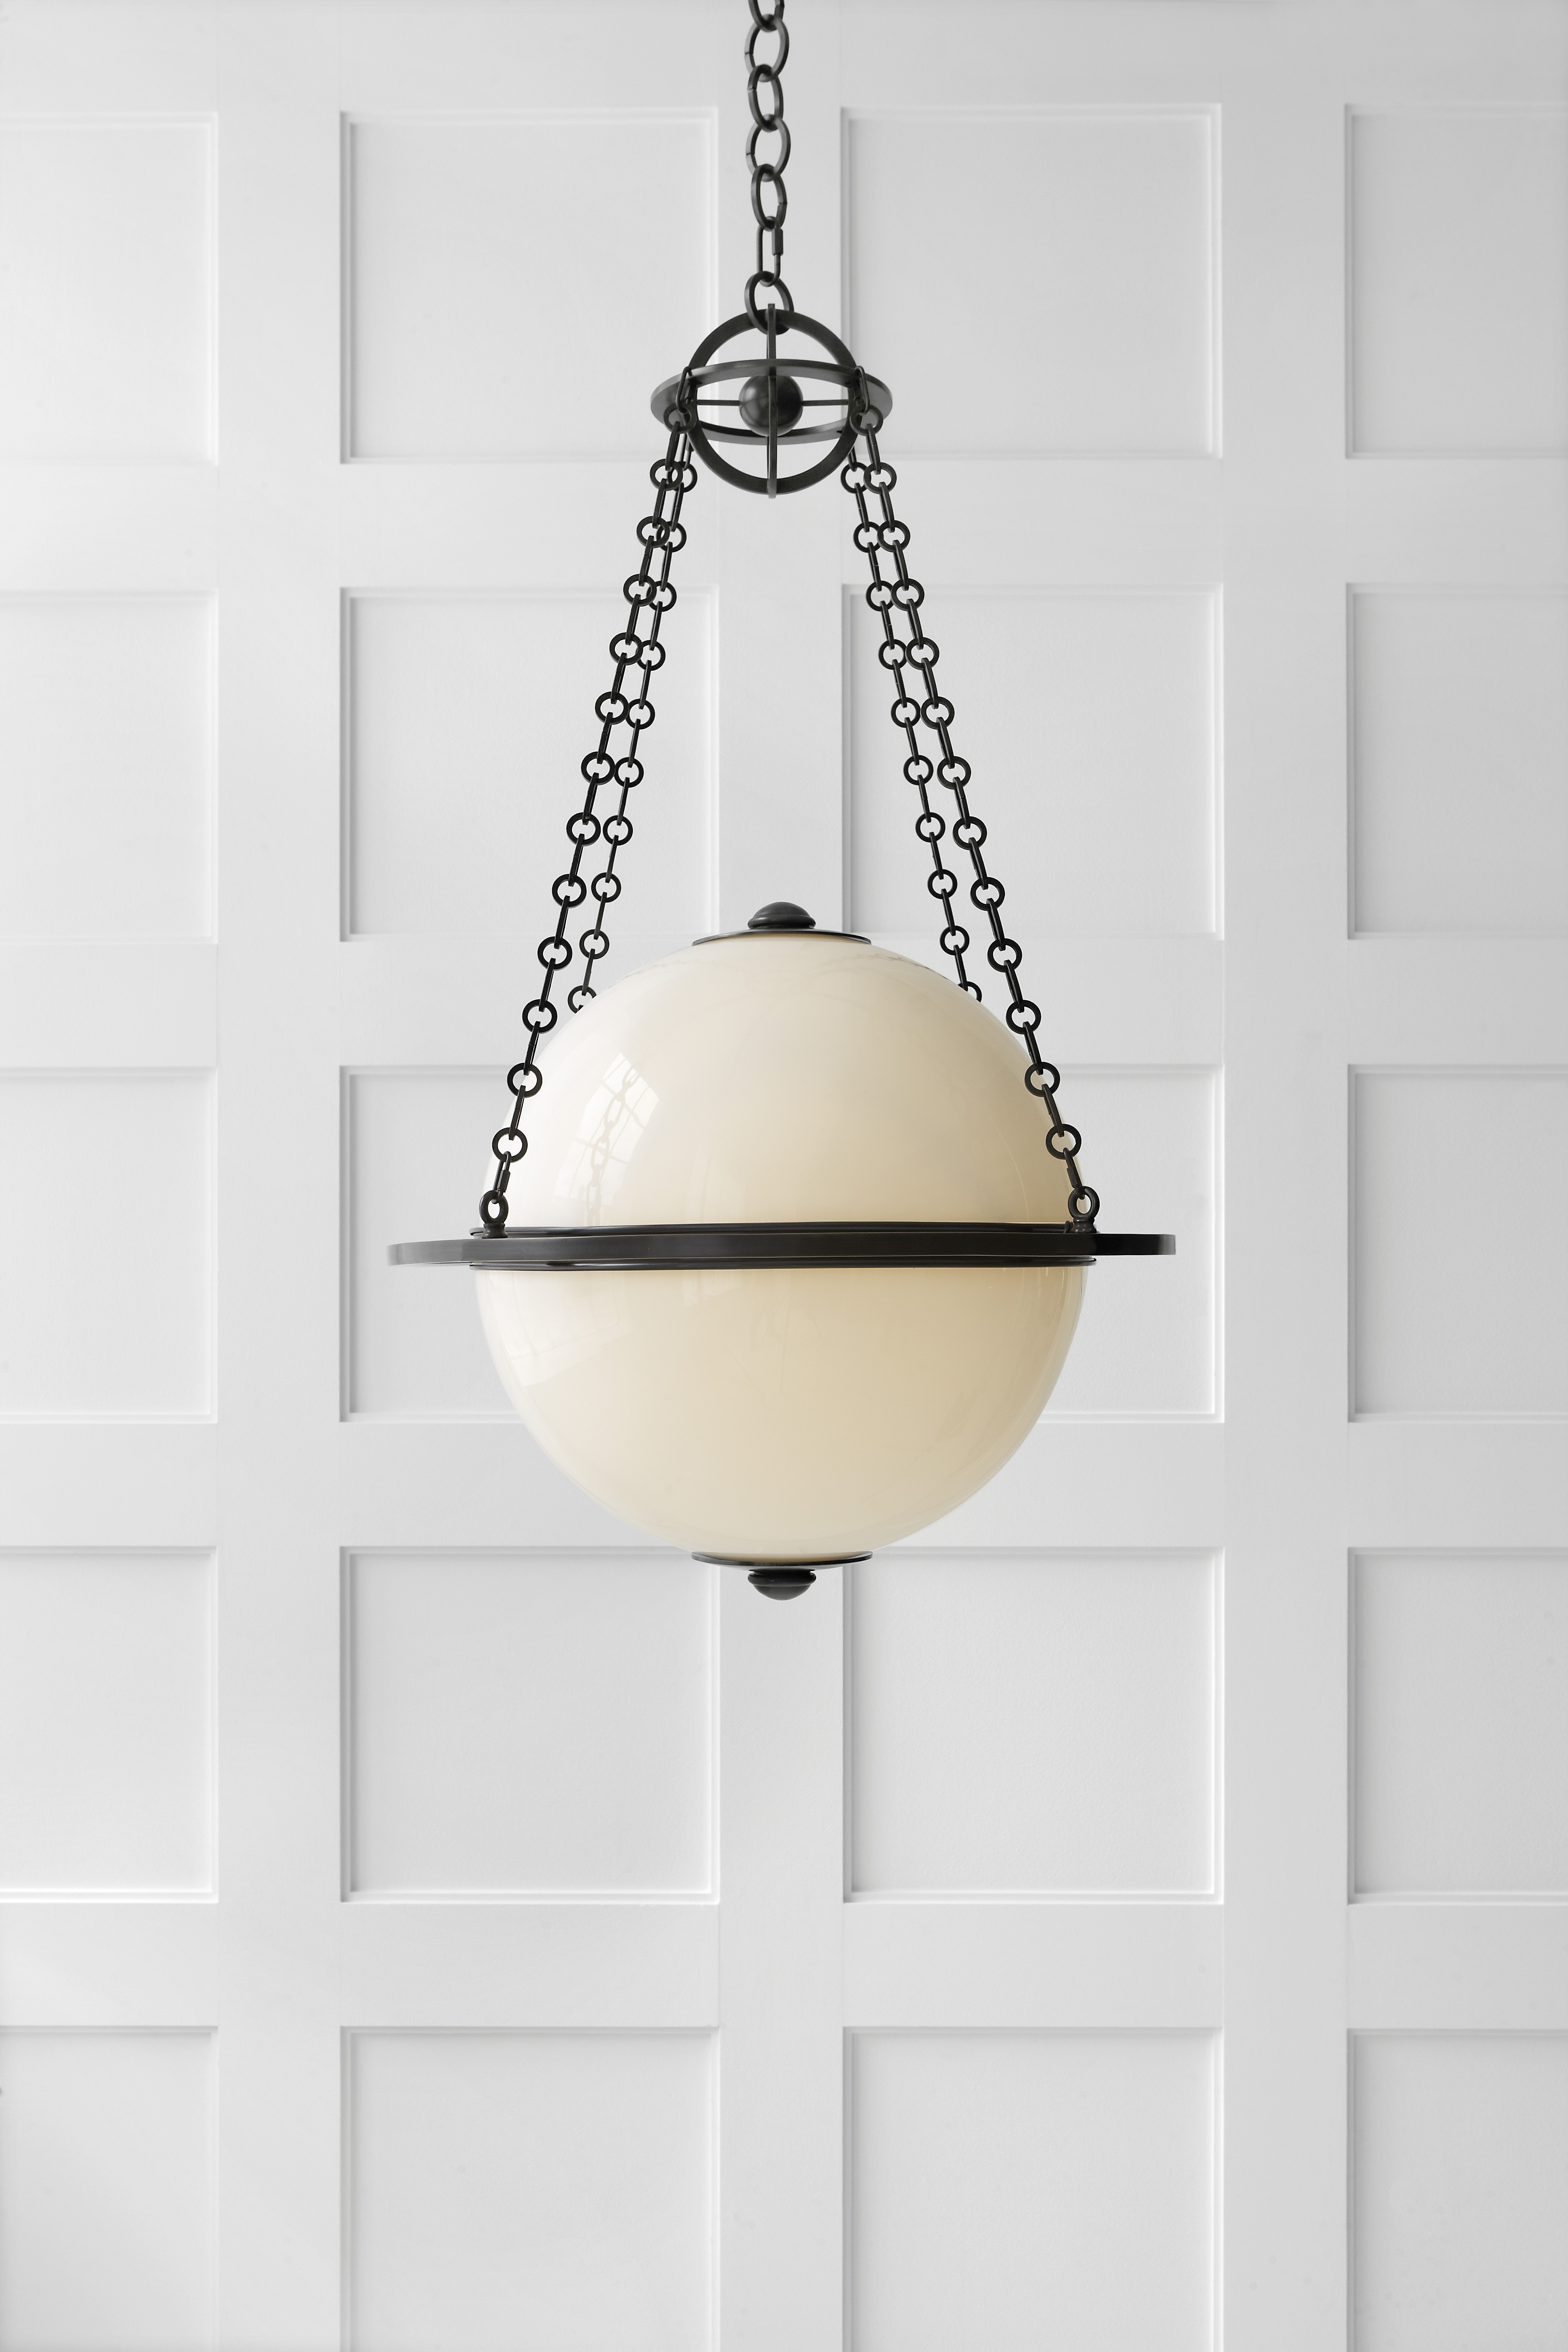 product with f glass wg products style chc e chandelier bronze white related chapman comfort visual in modern globe lantern